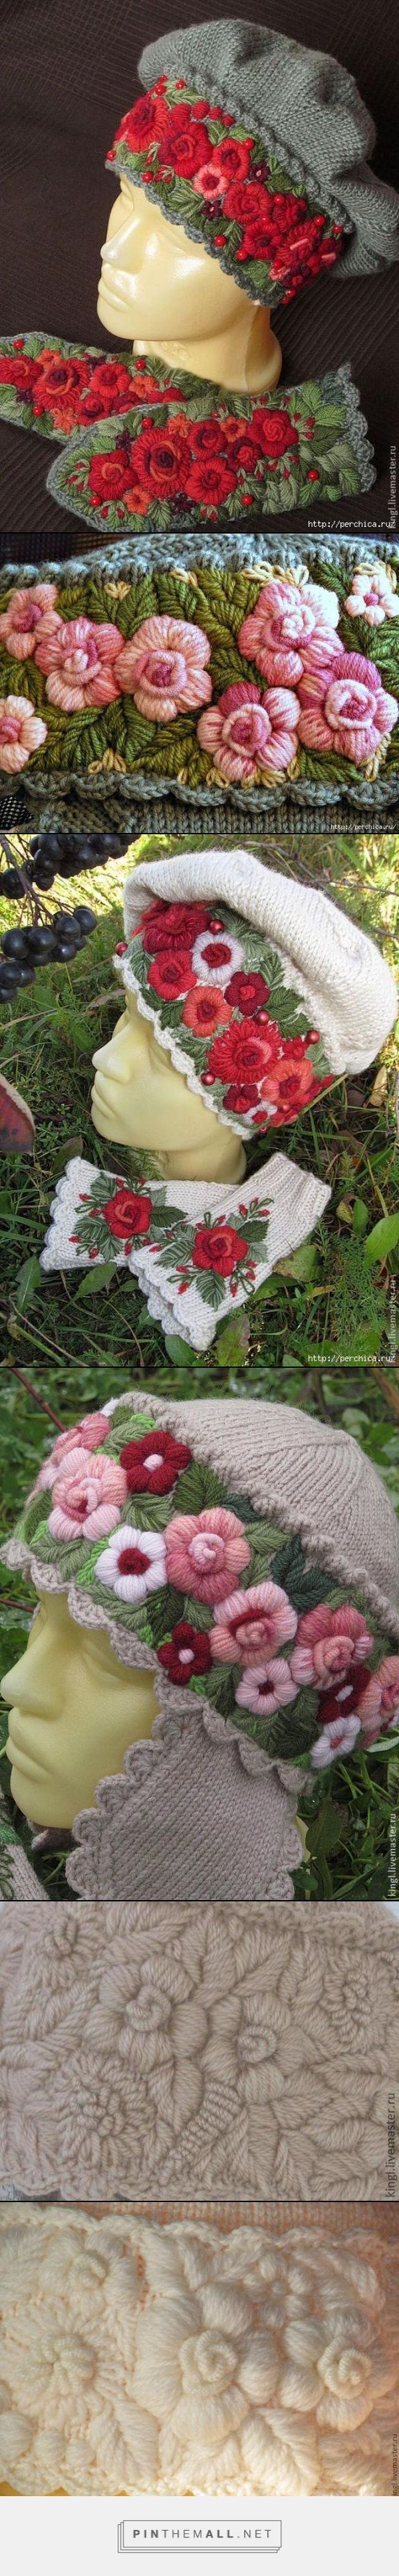 Beautiful embroidered knitting ~~ http://www.liveinternet.ru/users/3344739/post317465962/